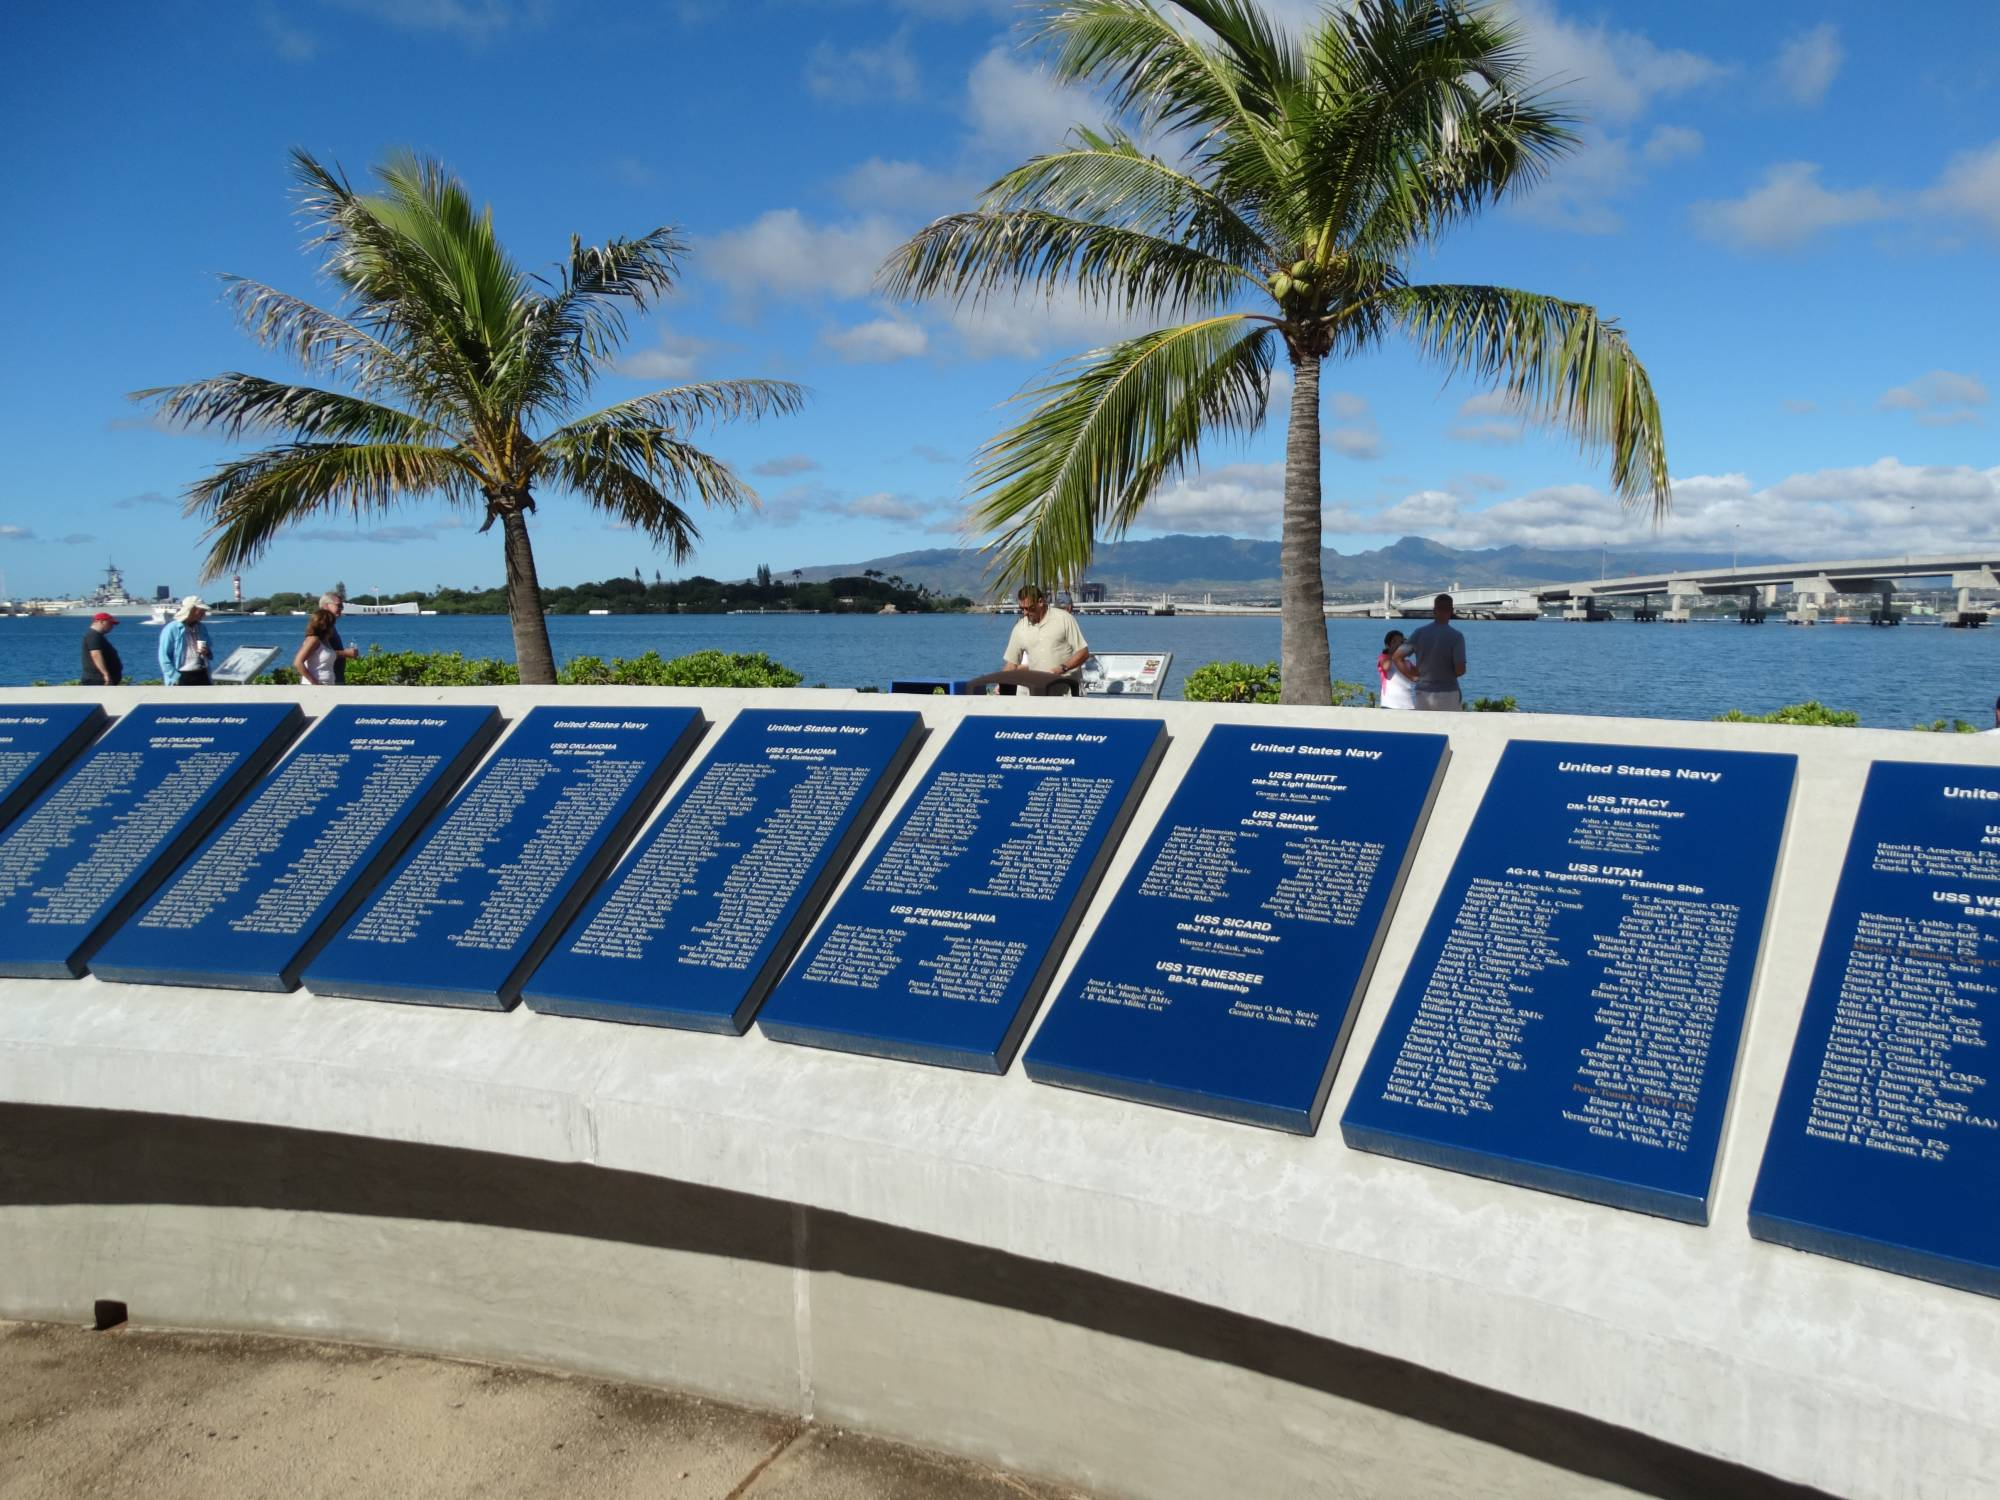 Visit the Pearl Harbor Memorial while staying at Aulani | PassPorter.com